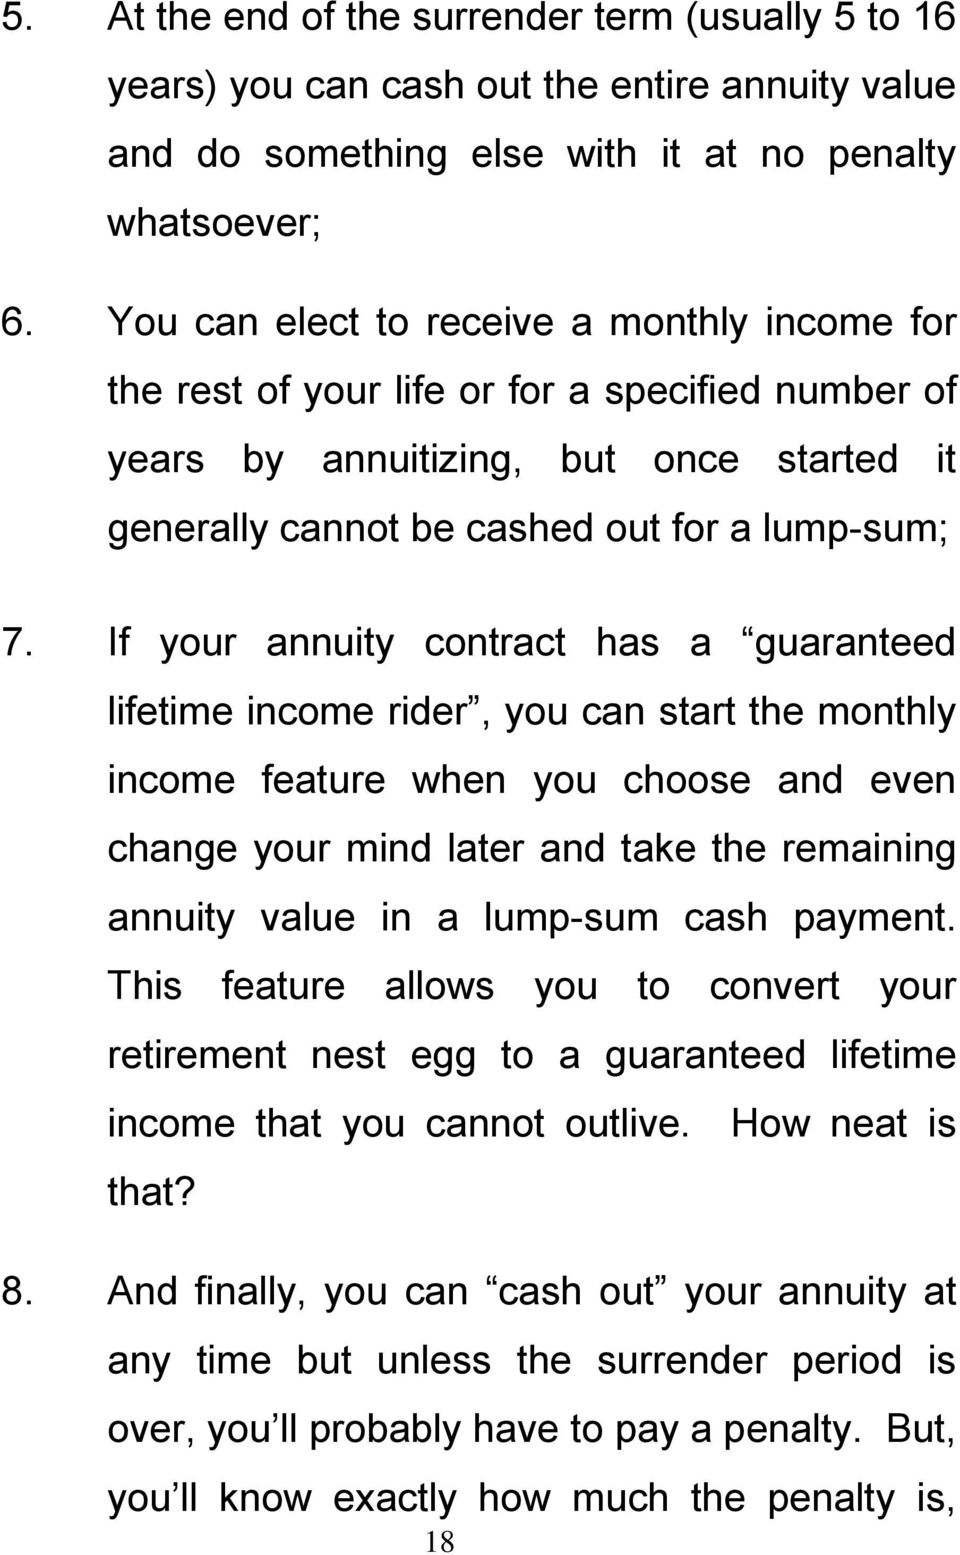 If your annuity contract has a guaranteed lifetime income rider, you can start the monthly income feature when you choose and even change your mind later and take the remaining annuity value in a